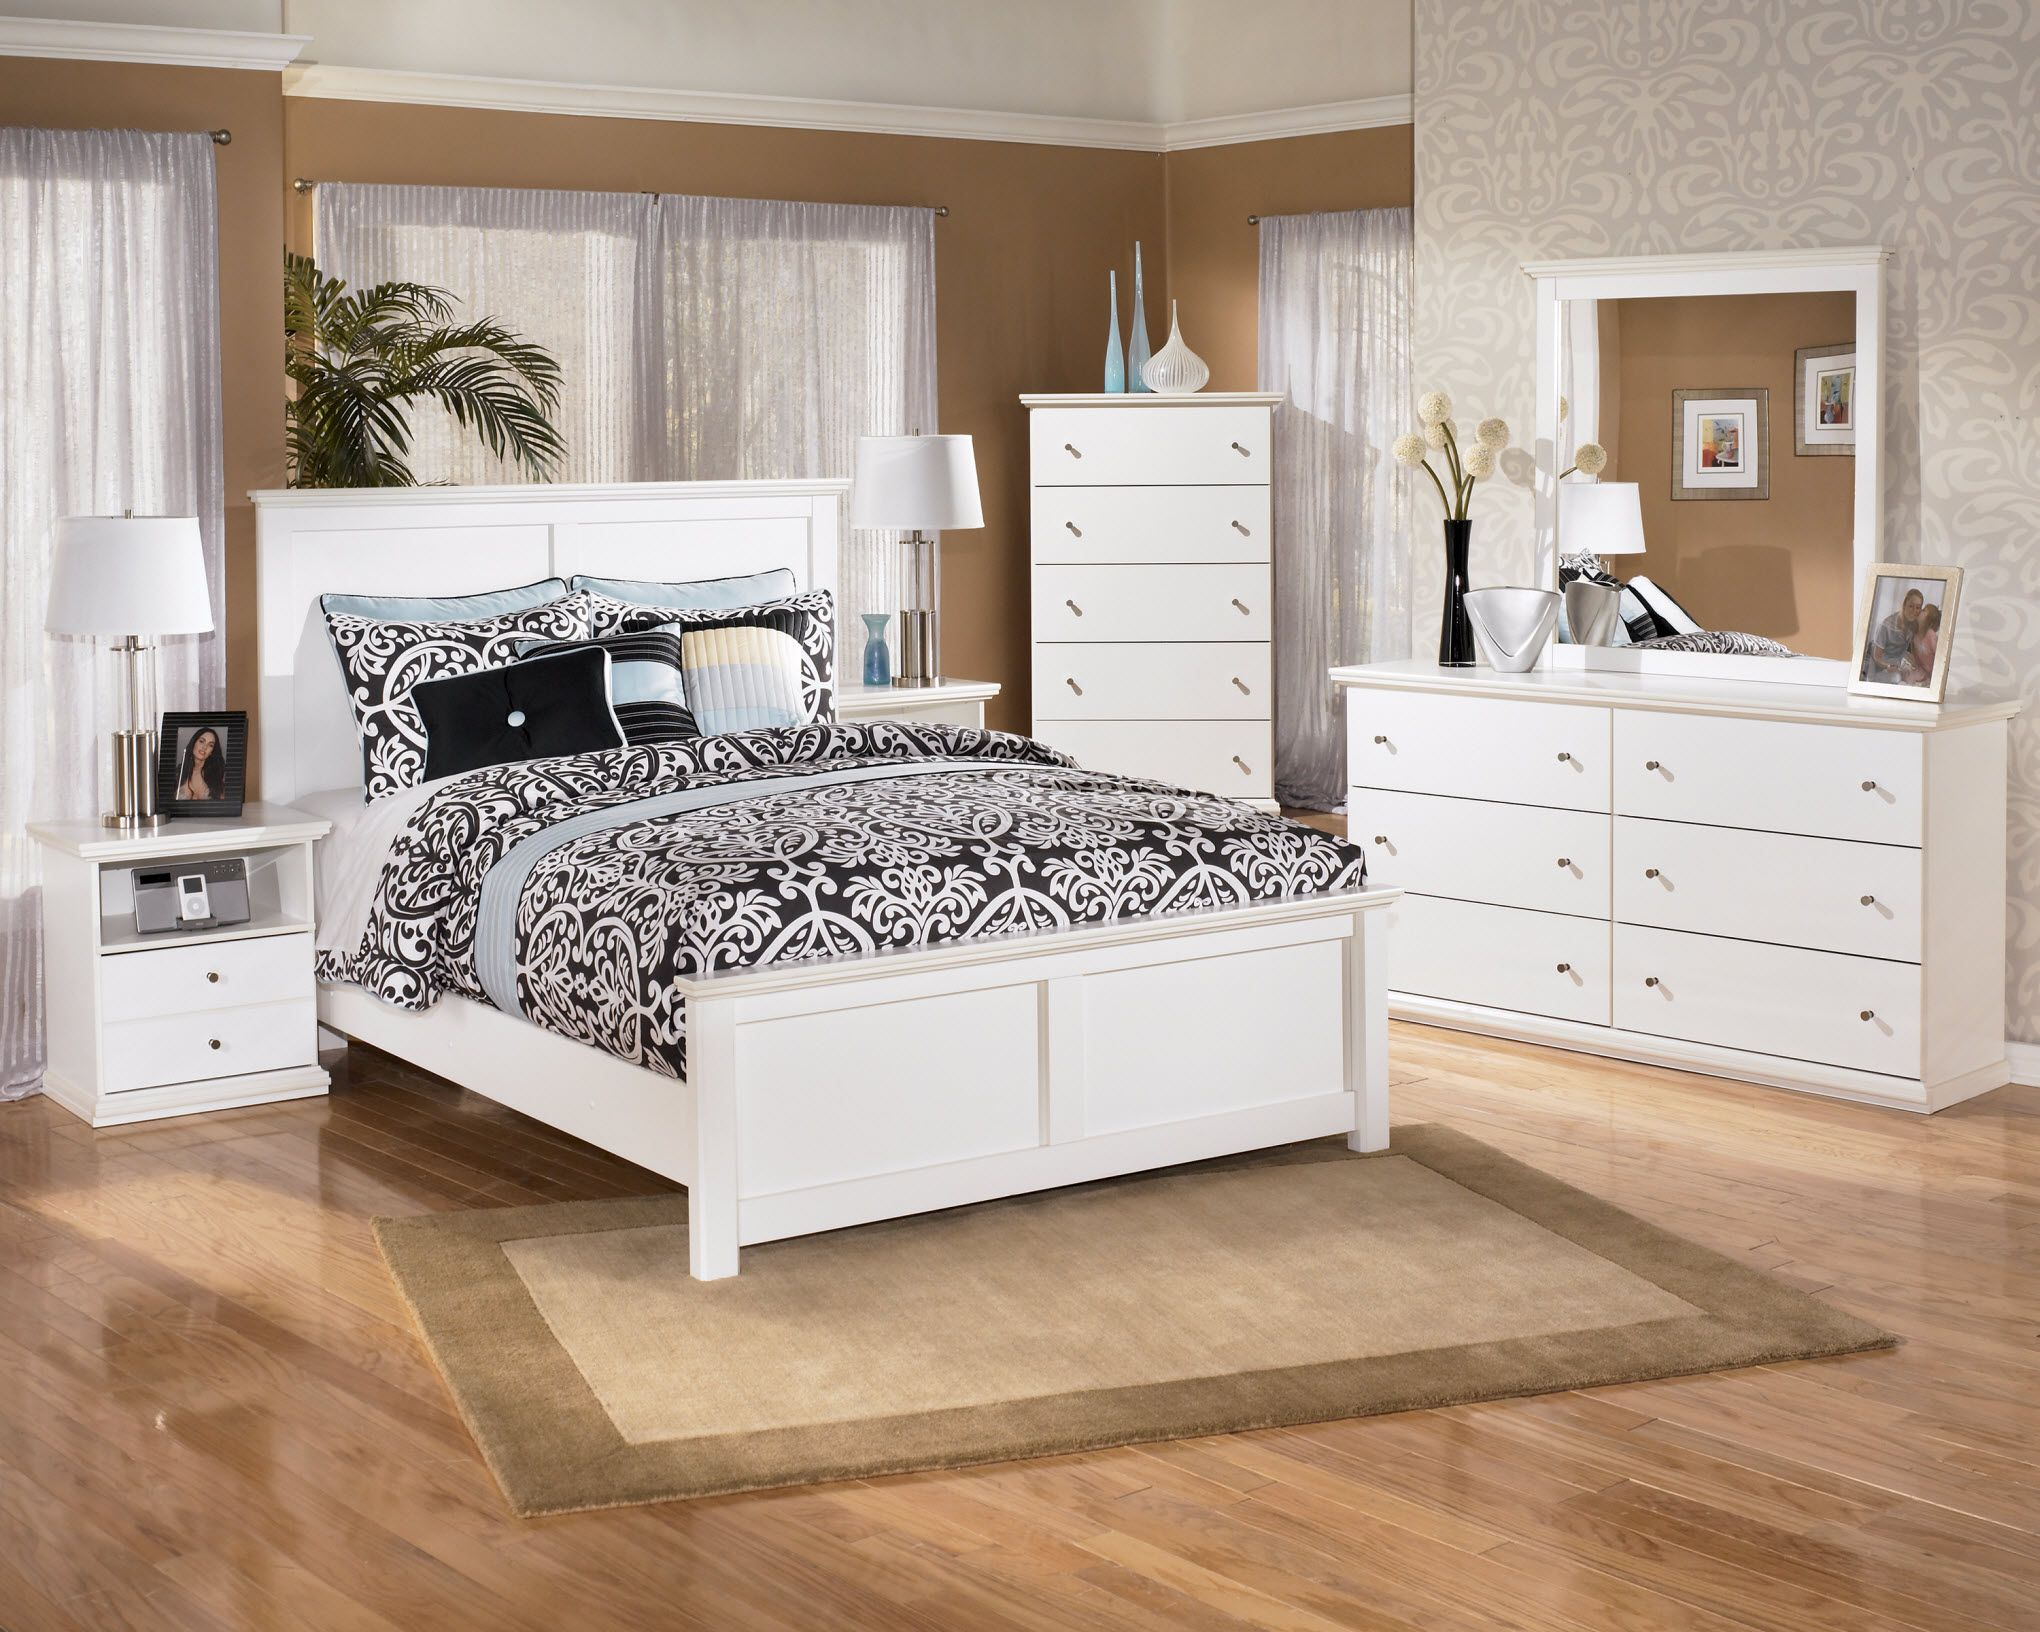 Bedroom Furniture White awesome white cottage bedroom furniture images - room design ideas